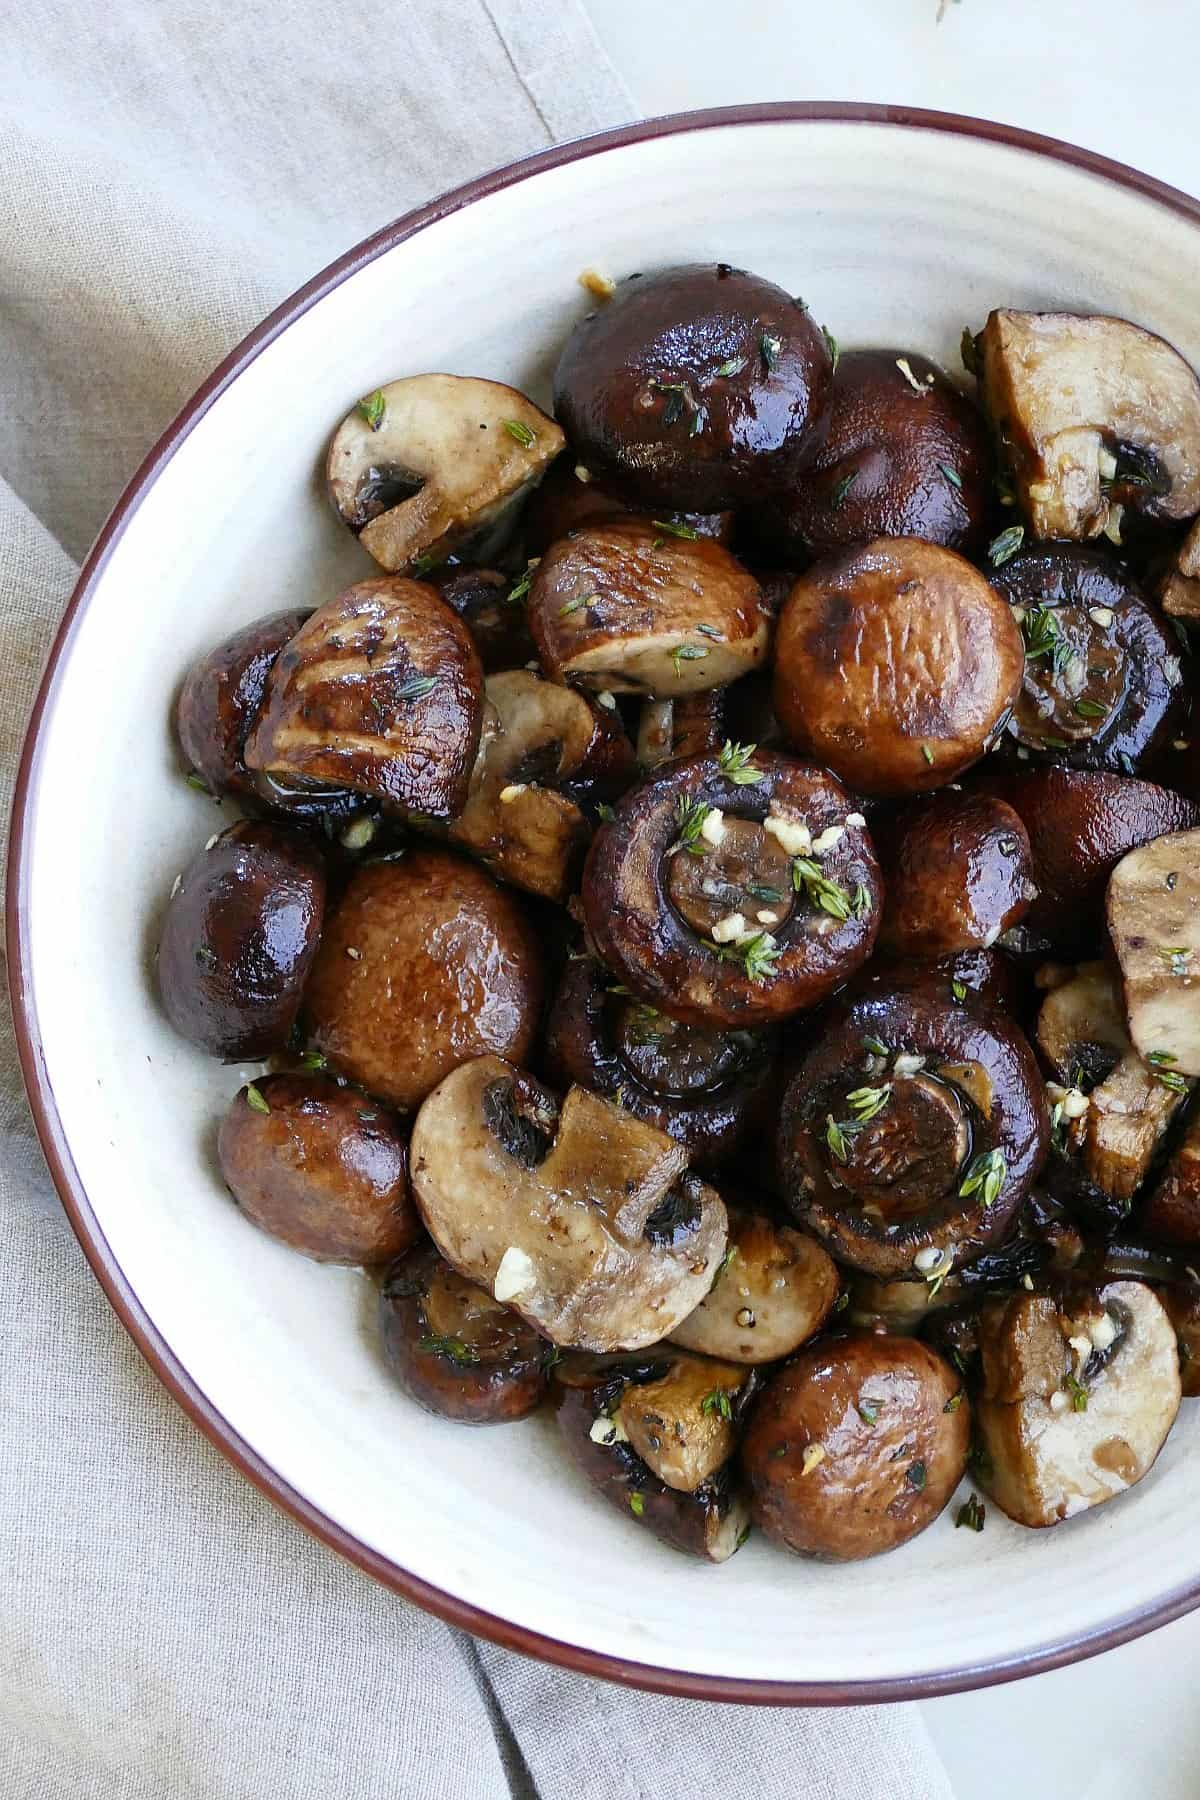 close-up image of garlic roasted mushrooms with thyme in a serving bowl on a counter